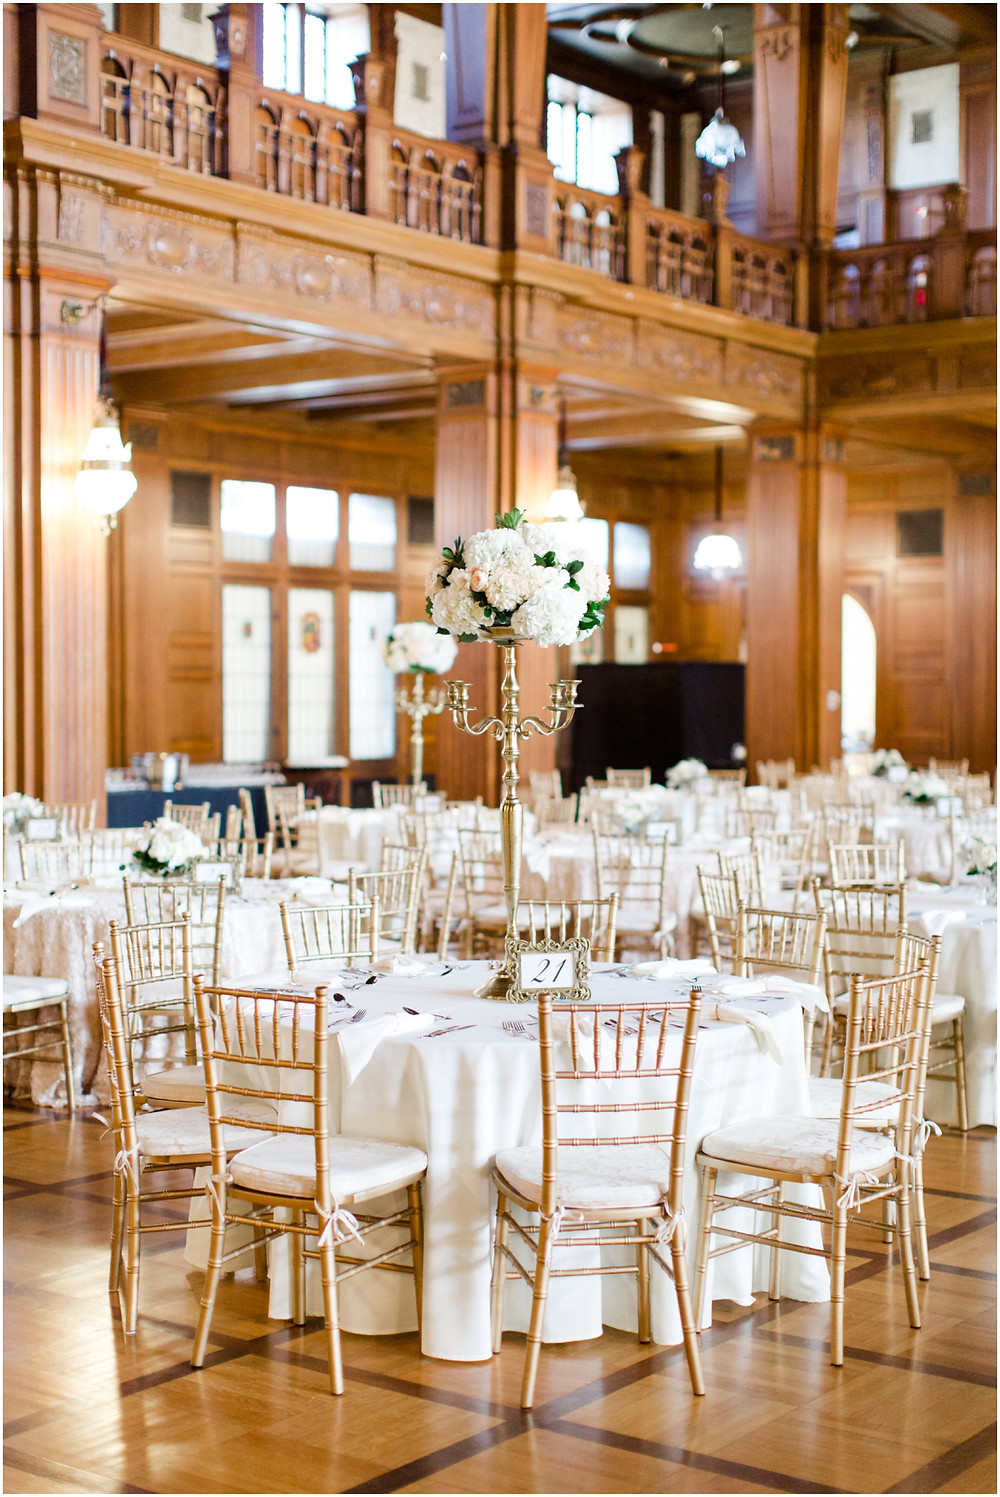 Scottish rite weddings